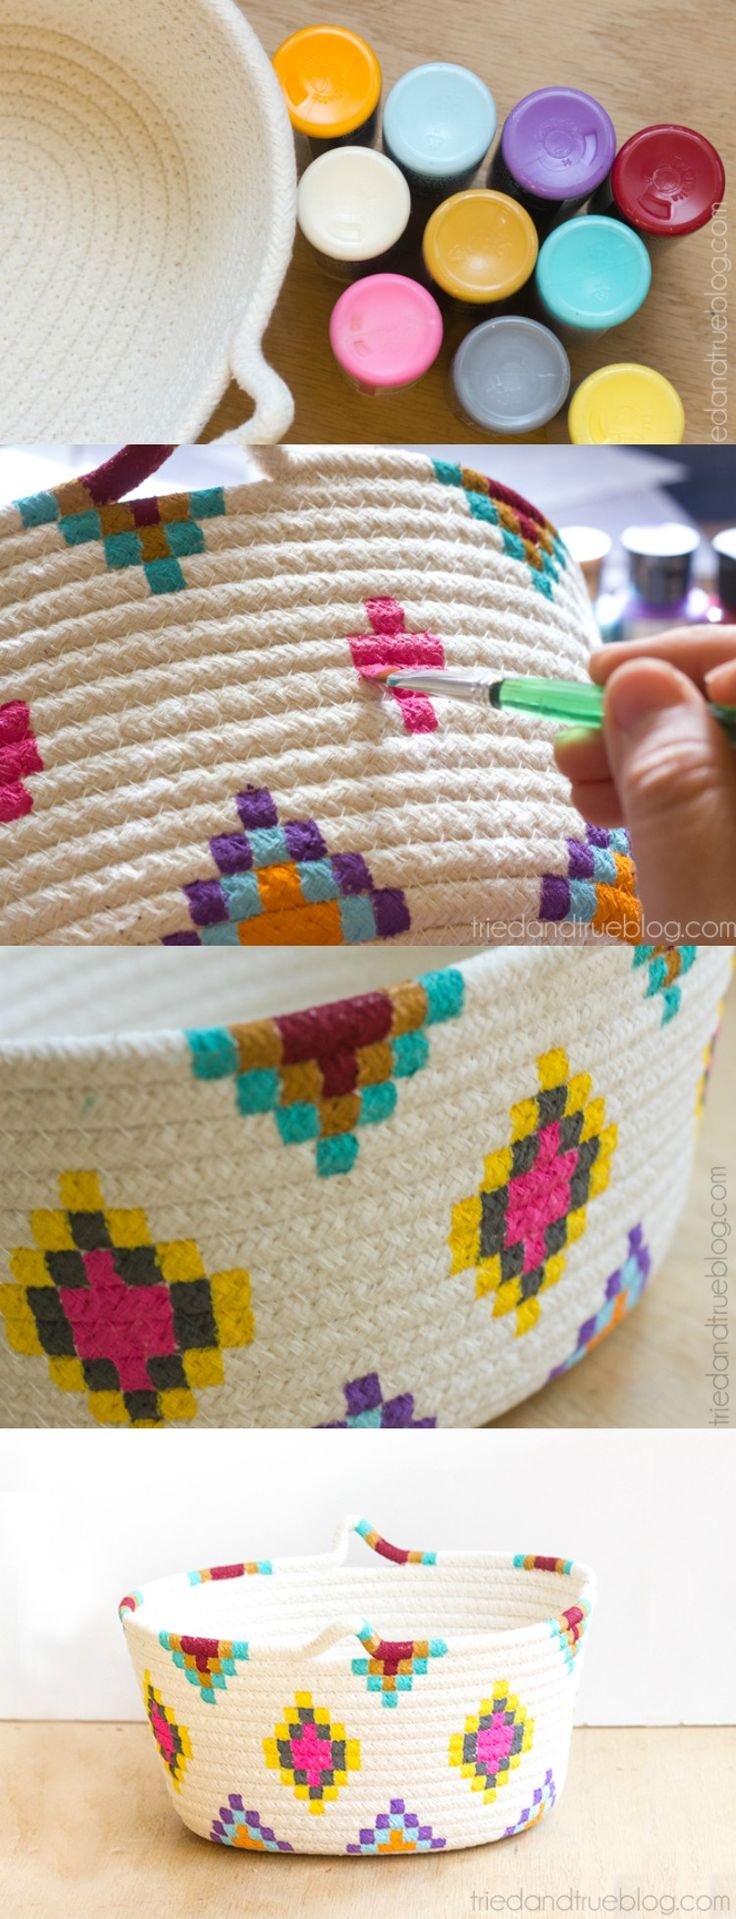 Pretty! This Kilim-Inspired painted basket tutorial is an easy way to try out a fun new color palette quickly and inexpensively. It's so simple to make!